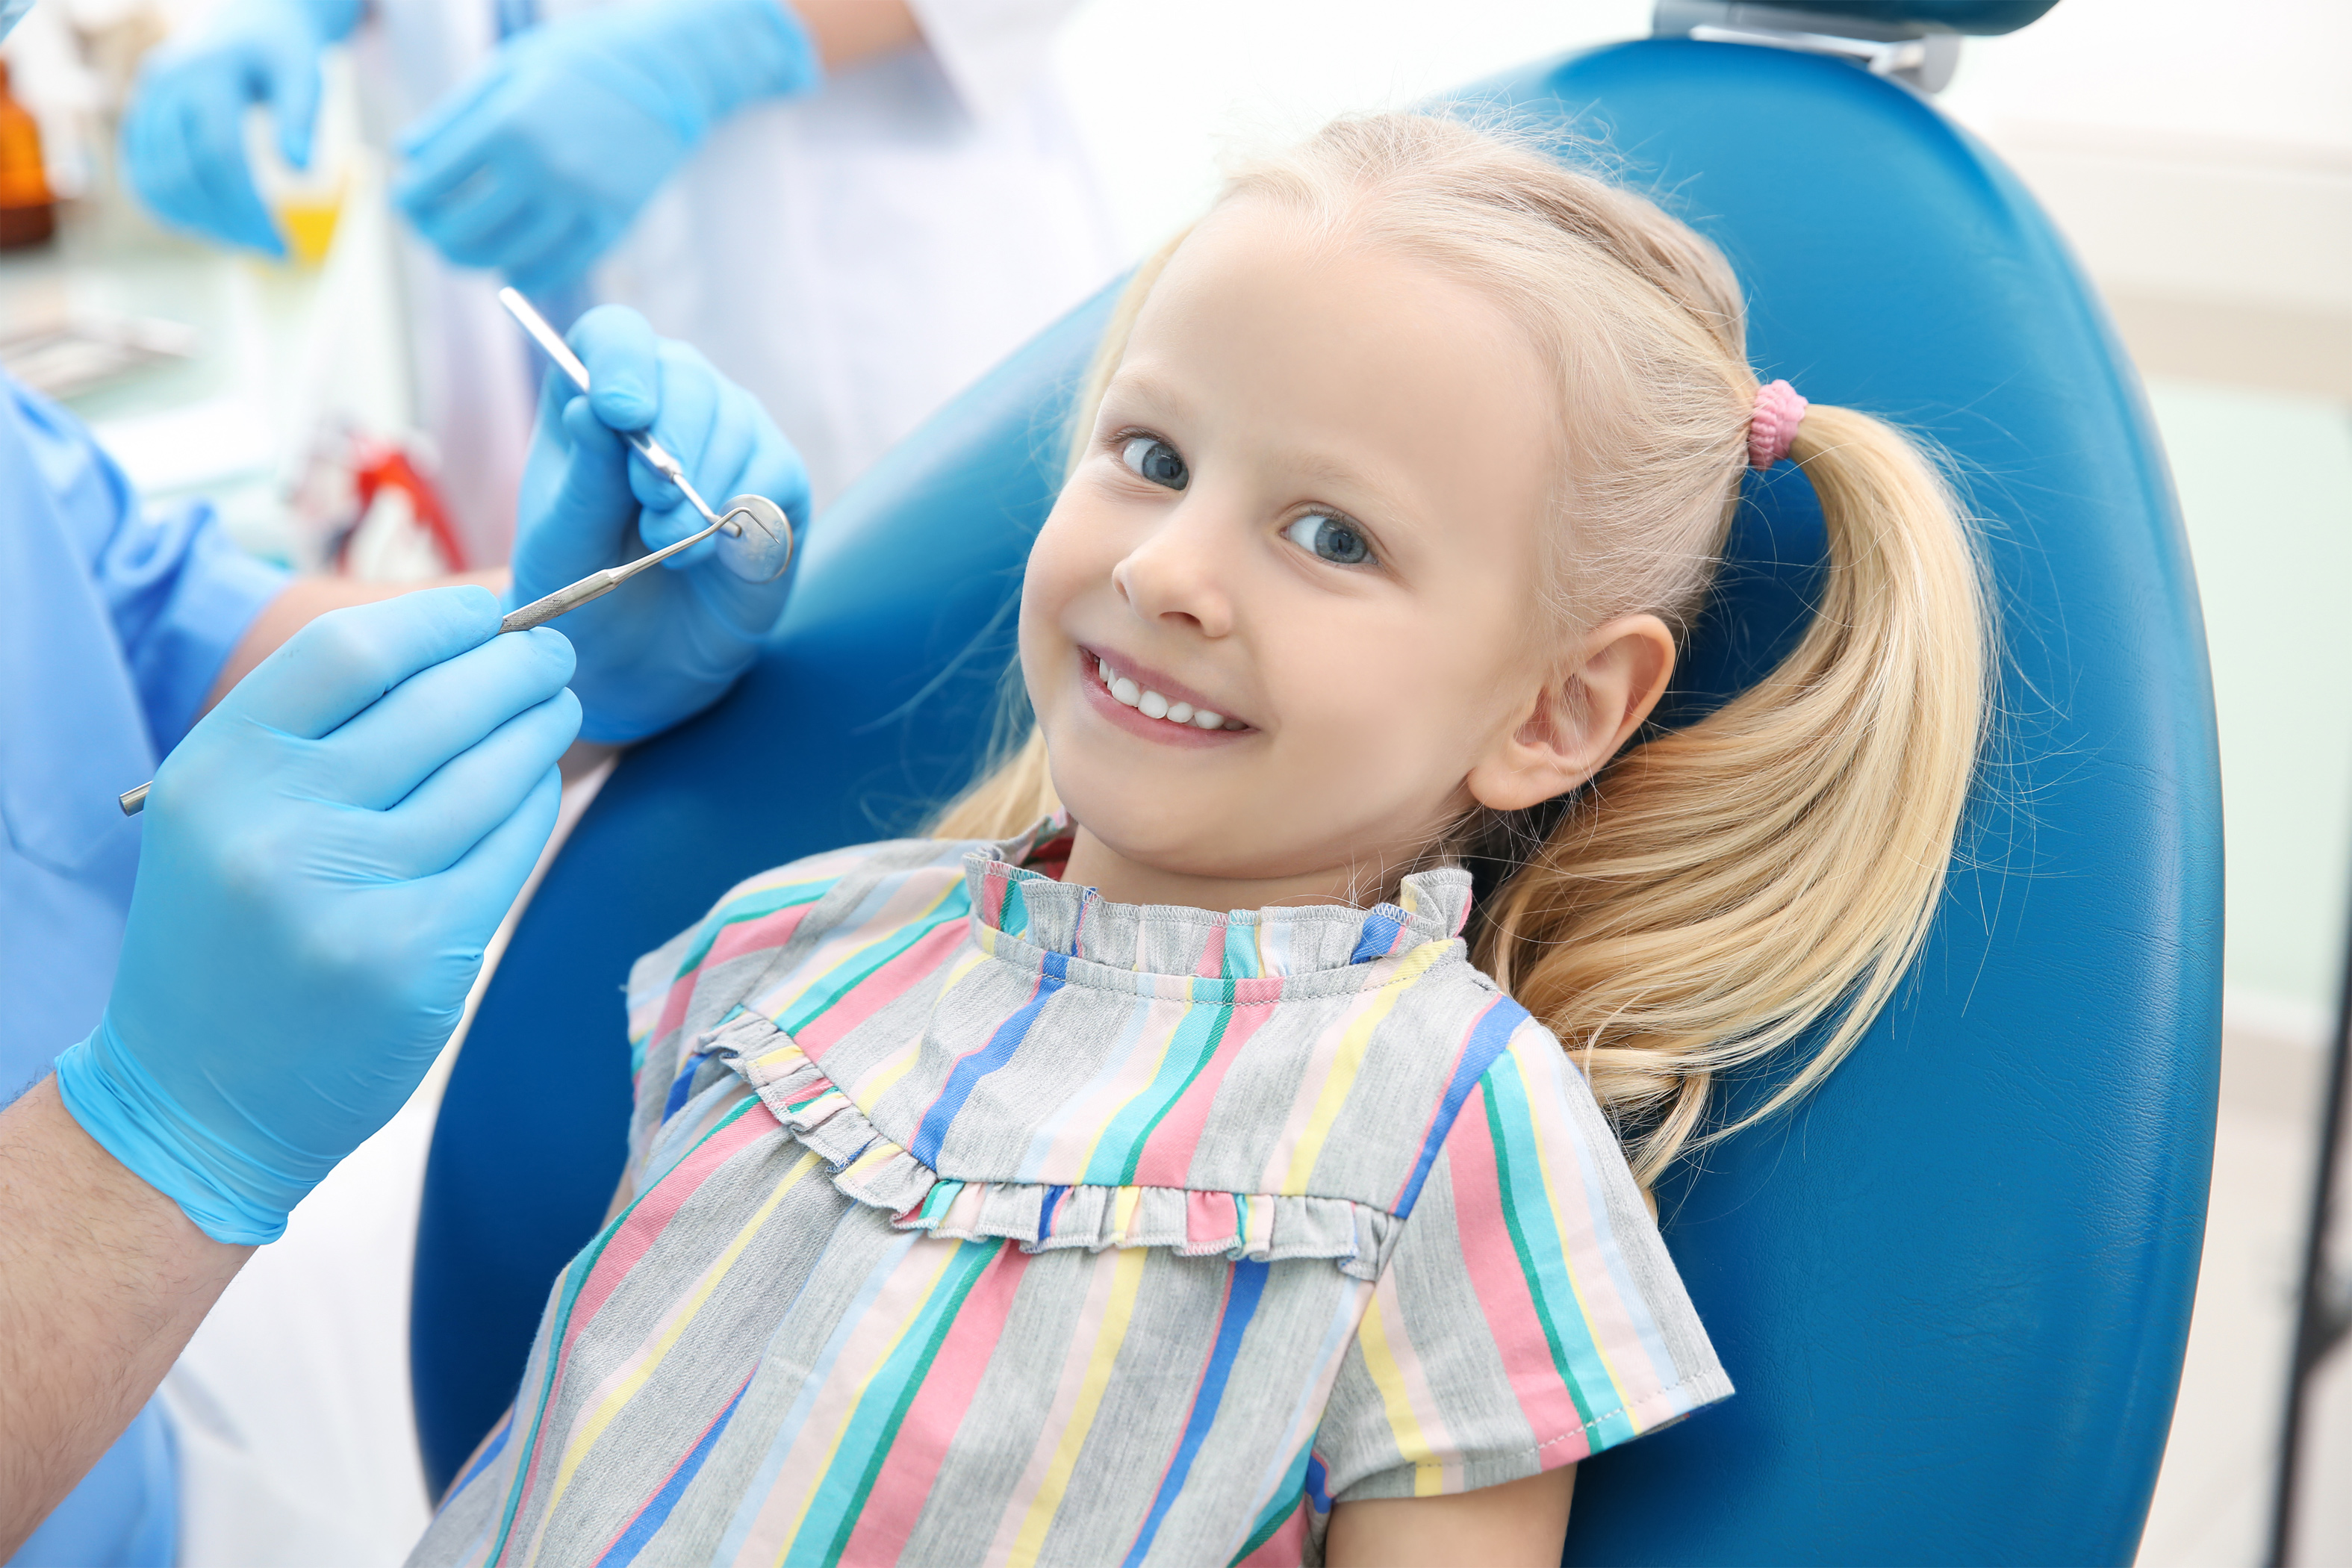 Dental fee guide provides partial relief on issue of extreme high dental costs.